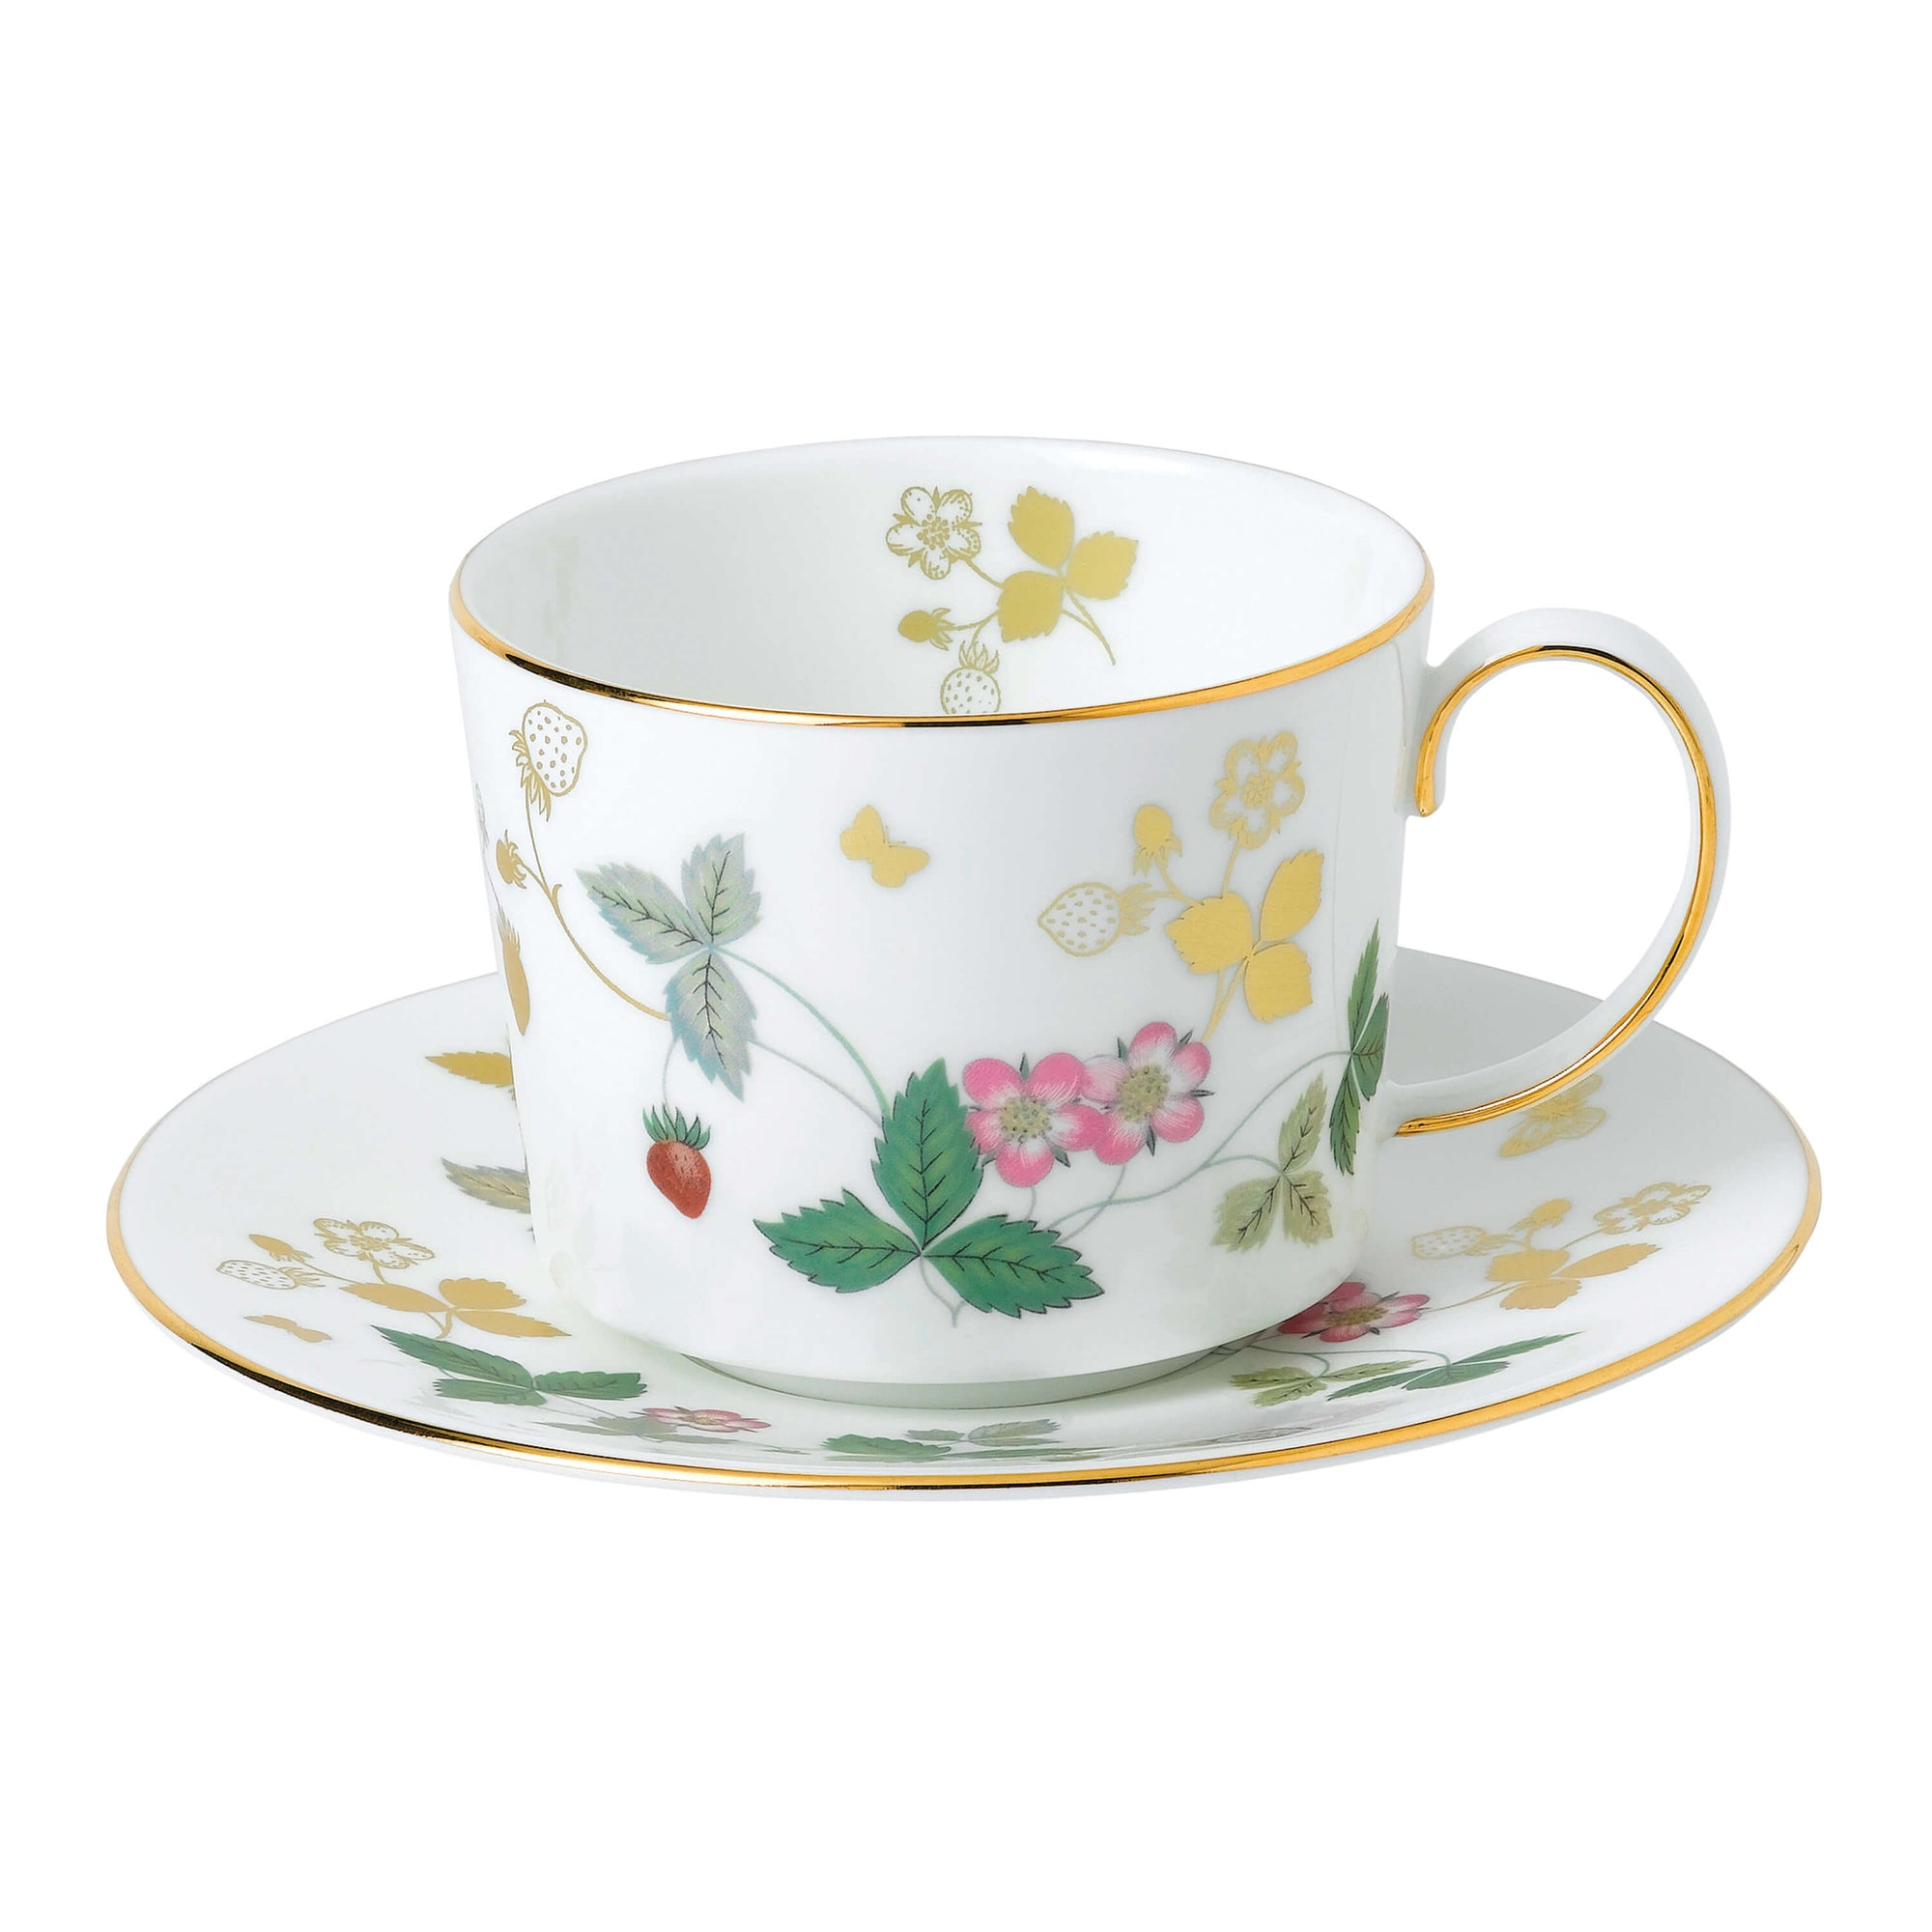 Wild Strawberry Gold Tea Cup & Saucer